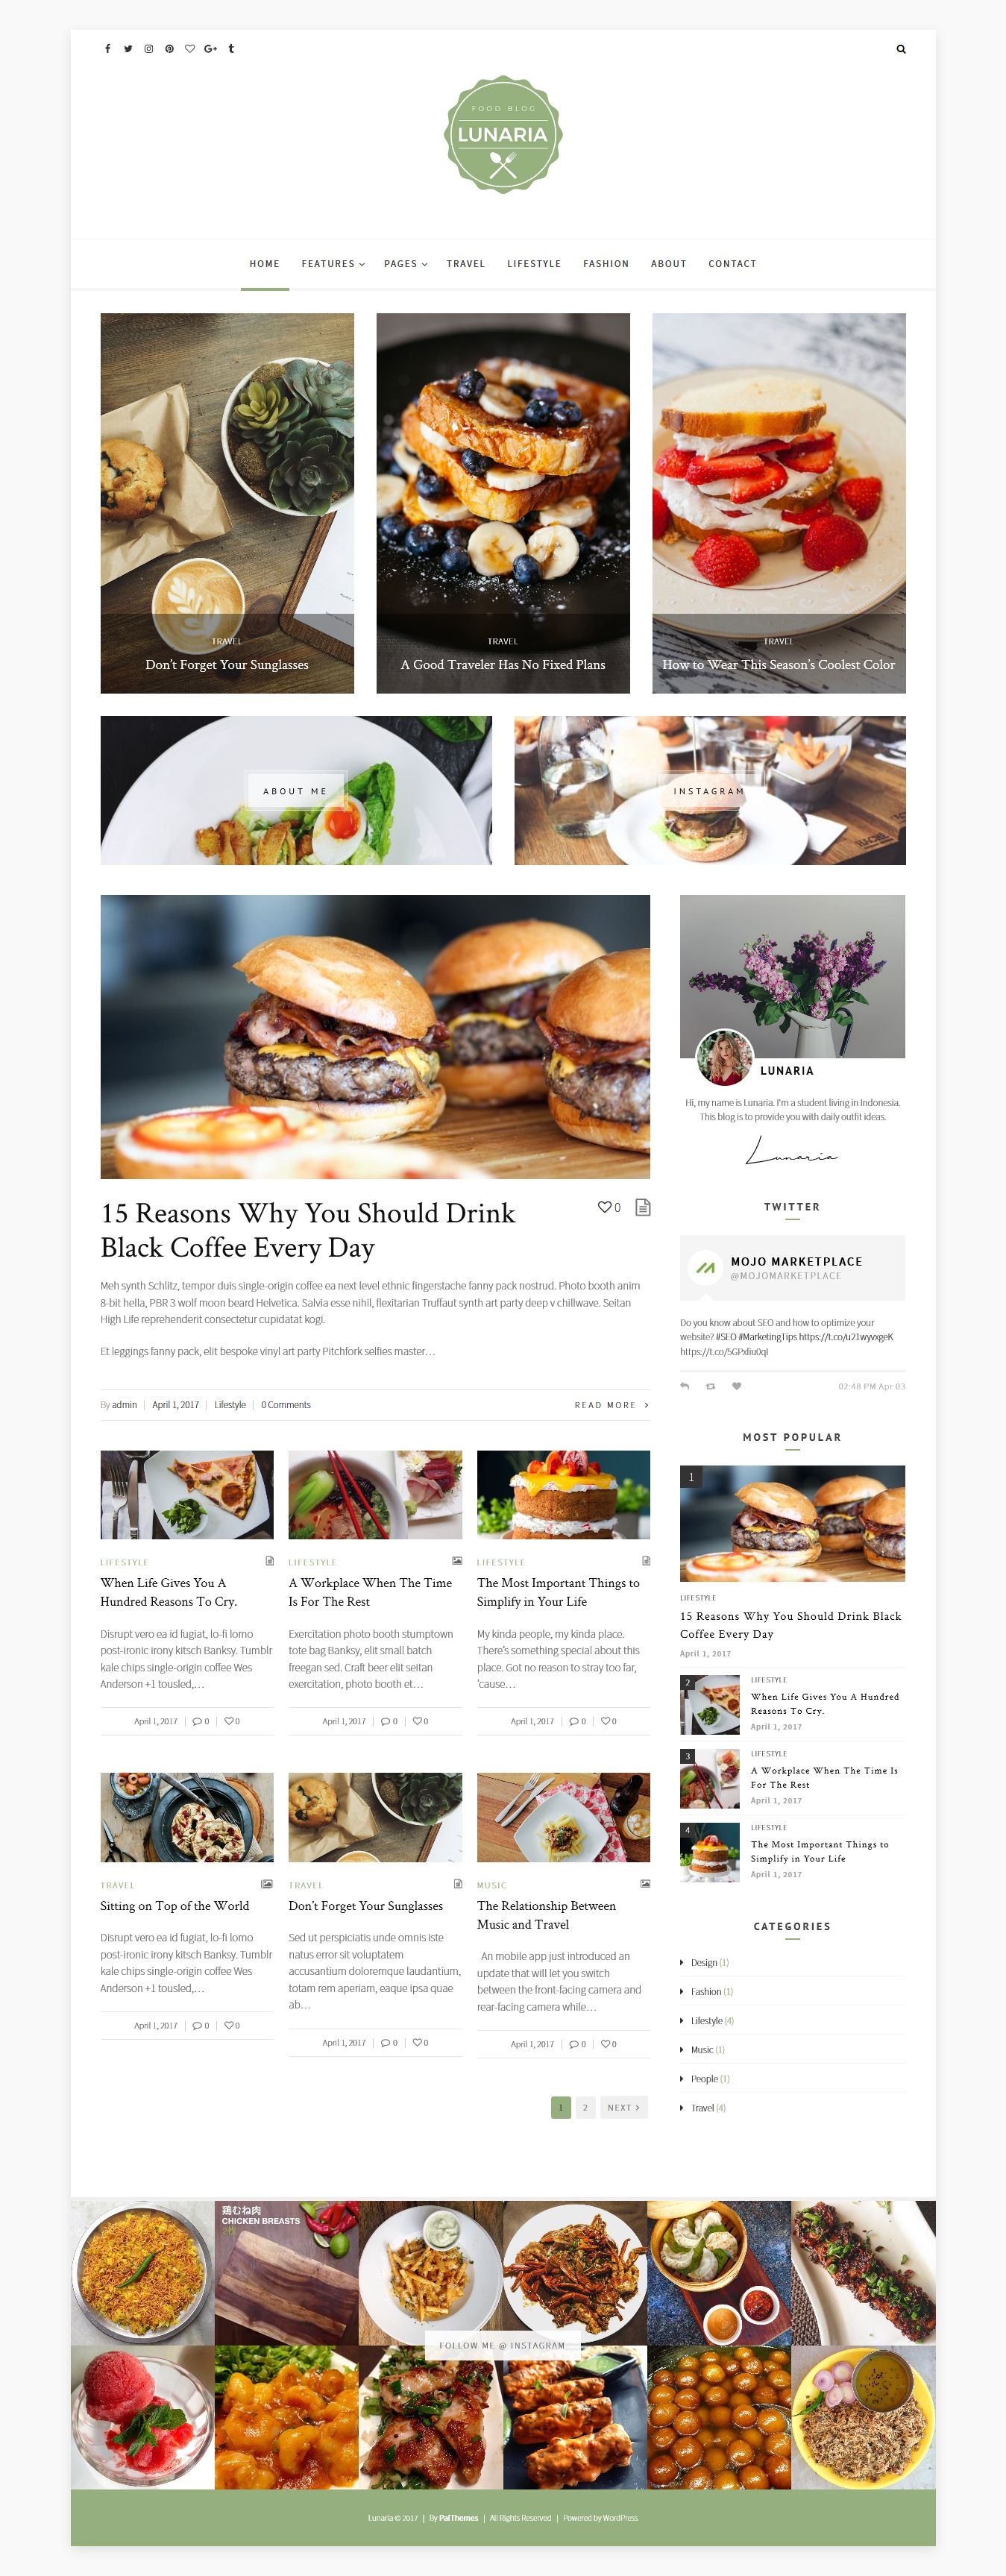 Lunaria - Clean Personal WordPress Theme Screenshot 3